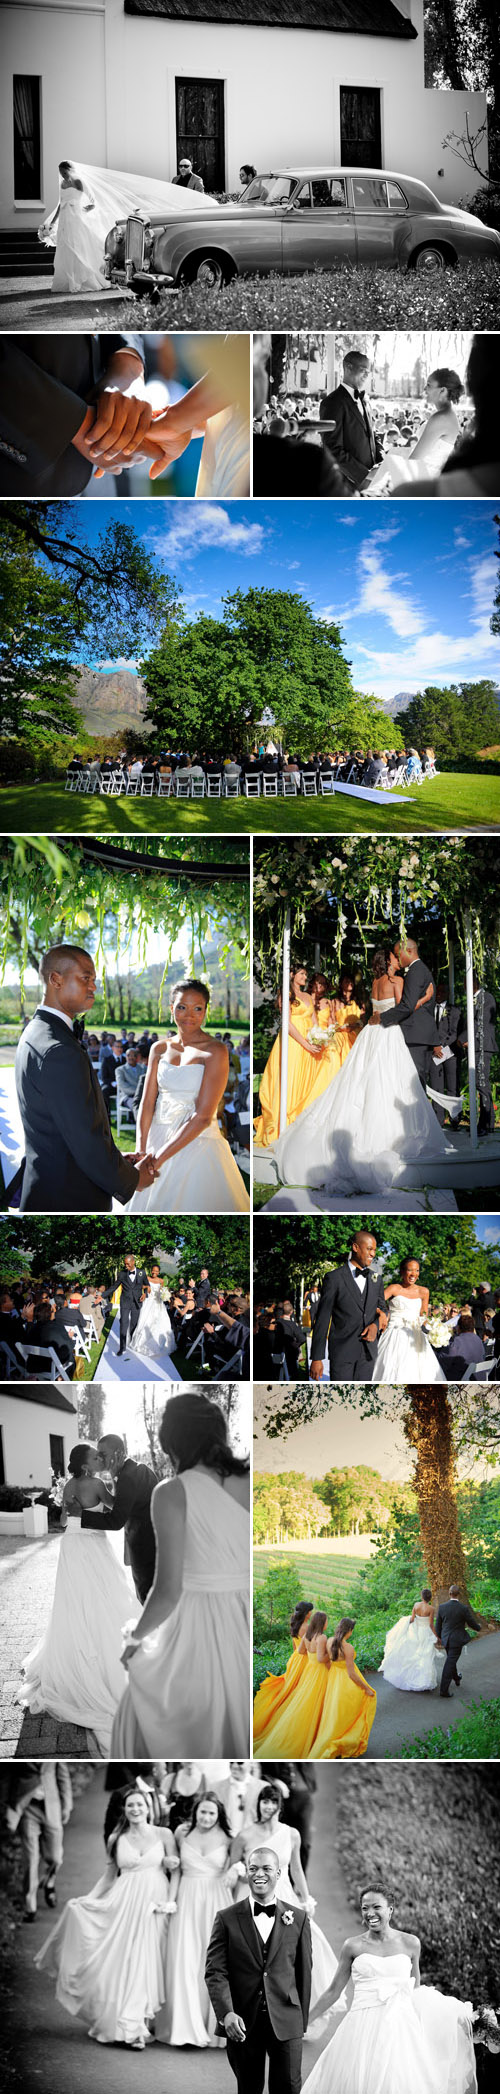 real outdoor wedding ceremony in south africa, images by jean pierre uys photography